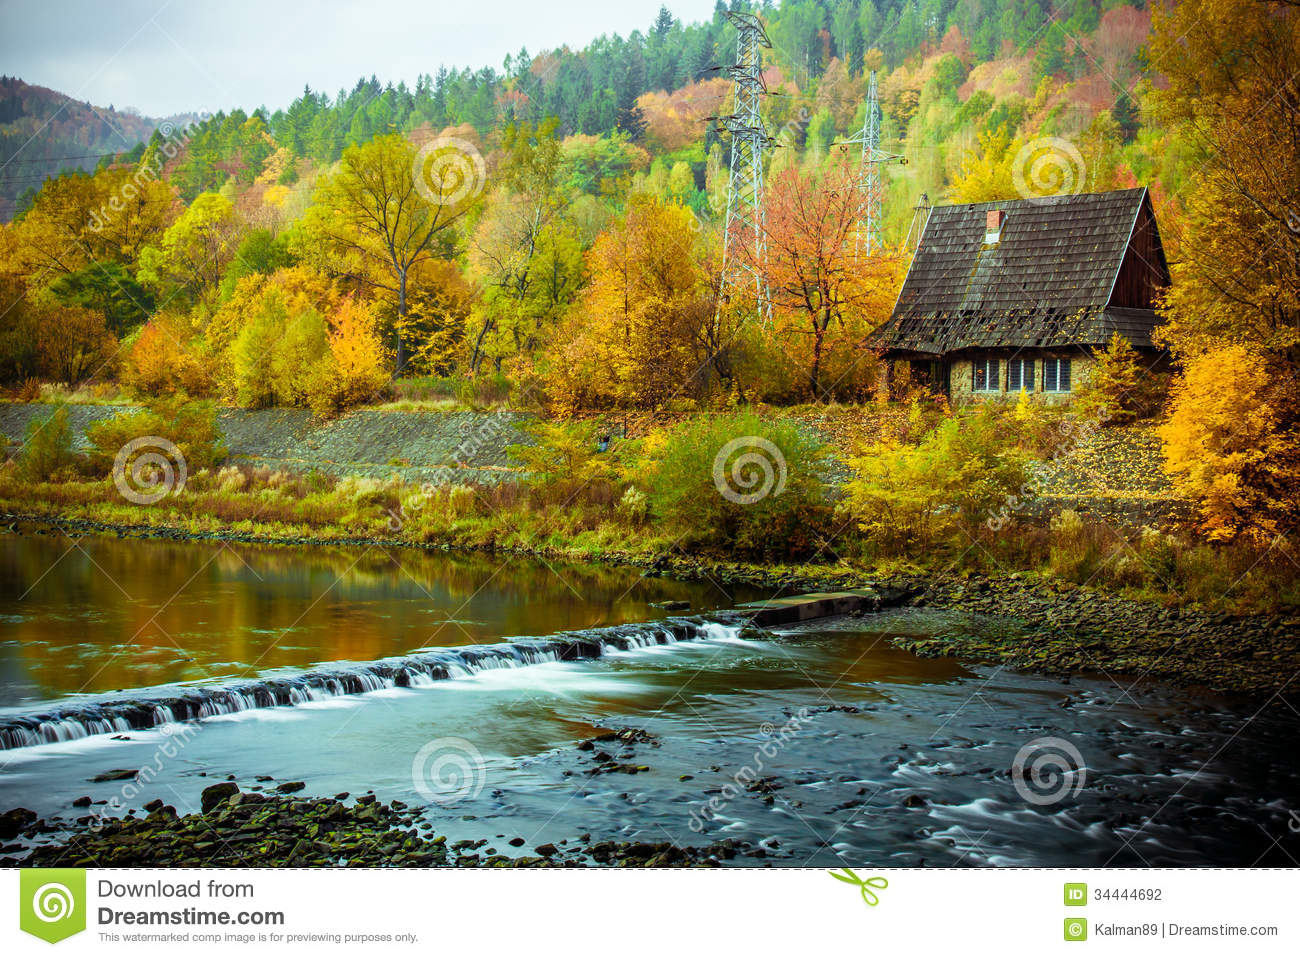 Lake Tahoe Inlet Frank Wilson moreover Chalet Ideas additionally Curved Roof House With Tiled Exterior together with Stock Photography Perfect Autumn Scenery Old Abandoned House Calm River Surrounded Colourful Trees Image34444692 as well WANTED One Daft Russian Buy 1 75m Mountain Aristocratic Landowner Announces Selling One Iconic Peaks Lake District Pay Death Duties Bill. on mountain or lake house plans